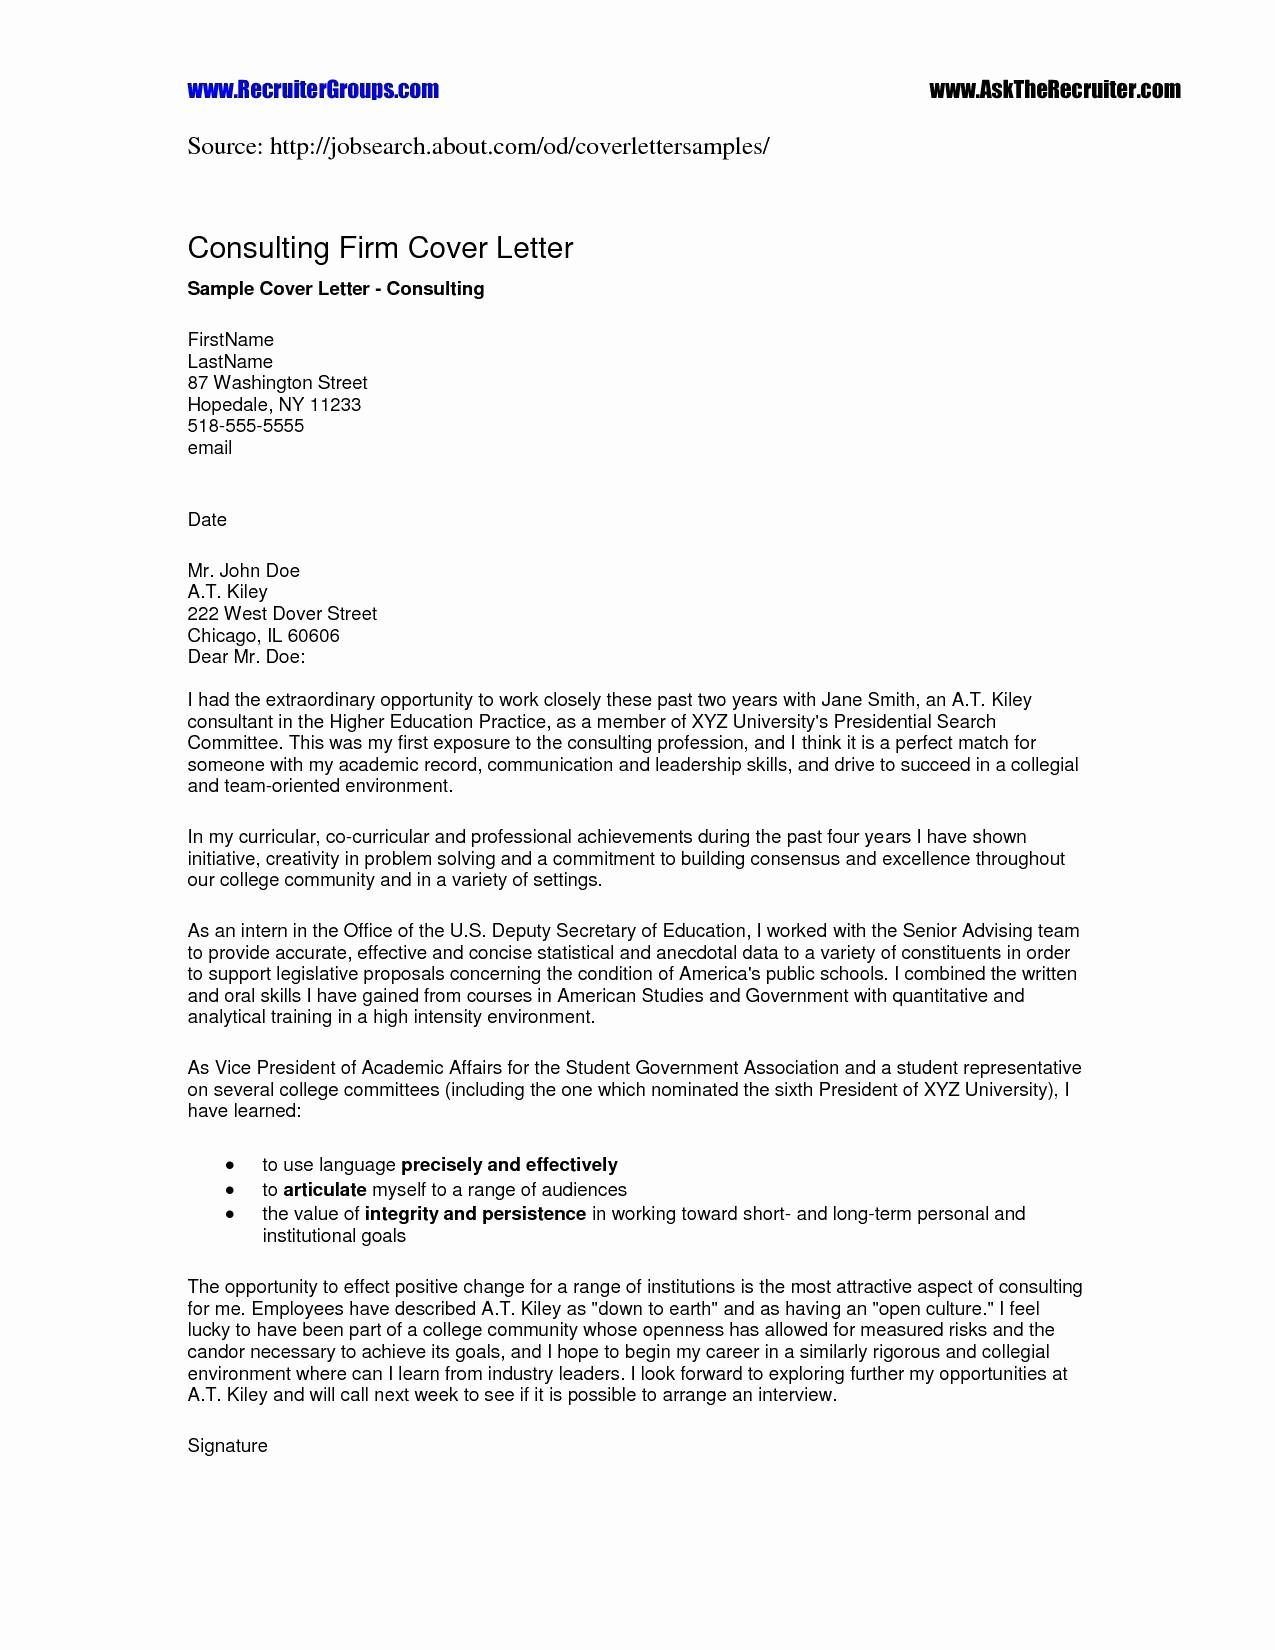 25 How To Close A Cover Letter Cover Letter Sample Cover Letter For Resume Job Cover Letter